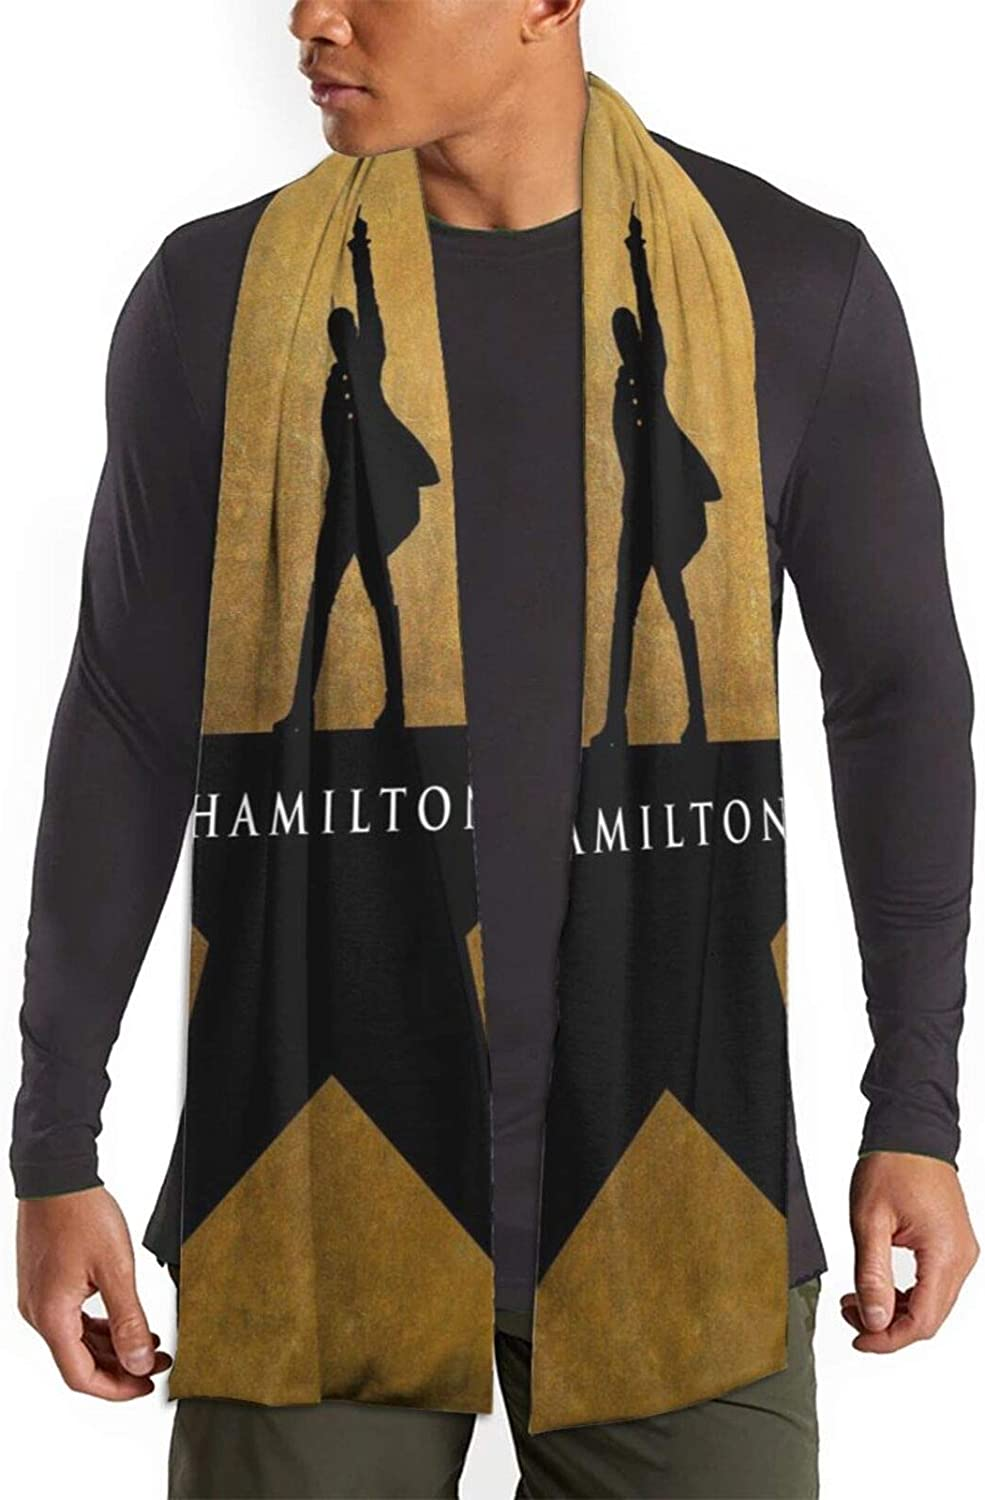 Hamilton American Musicals Ultra-Cheap Deals Long Fixed price for sale Scarf Winter Fashion Uni Scarves